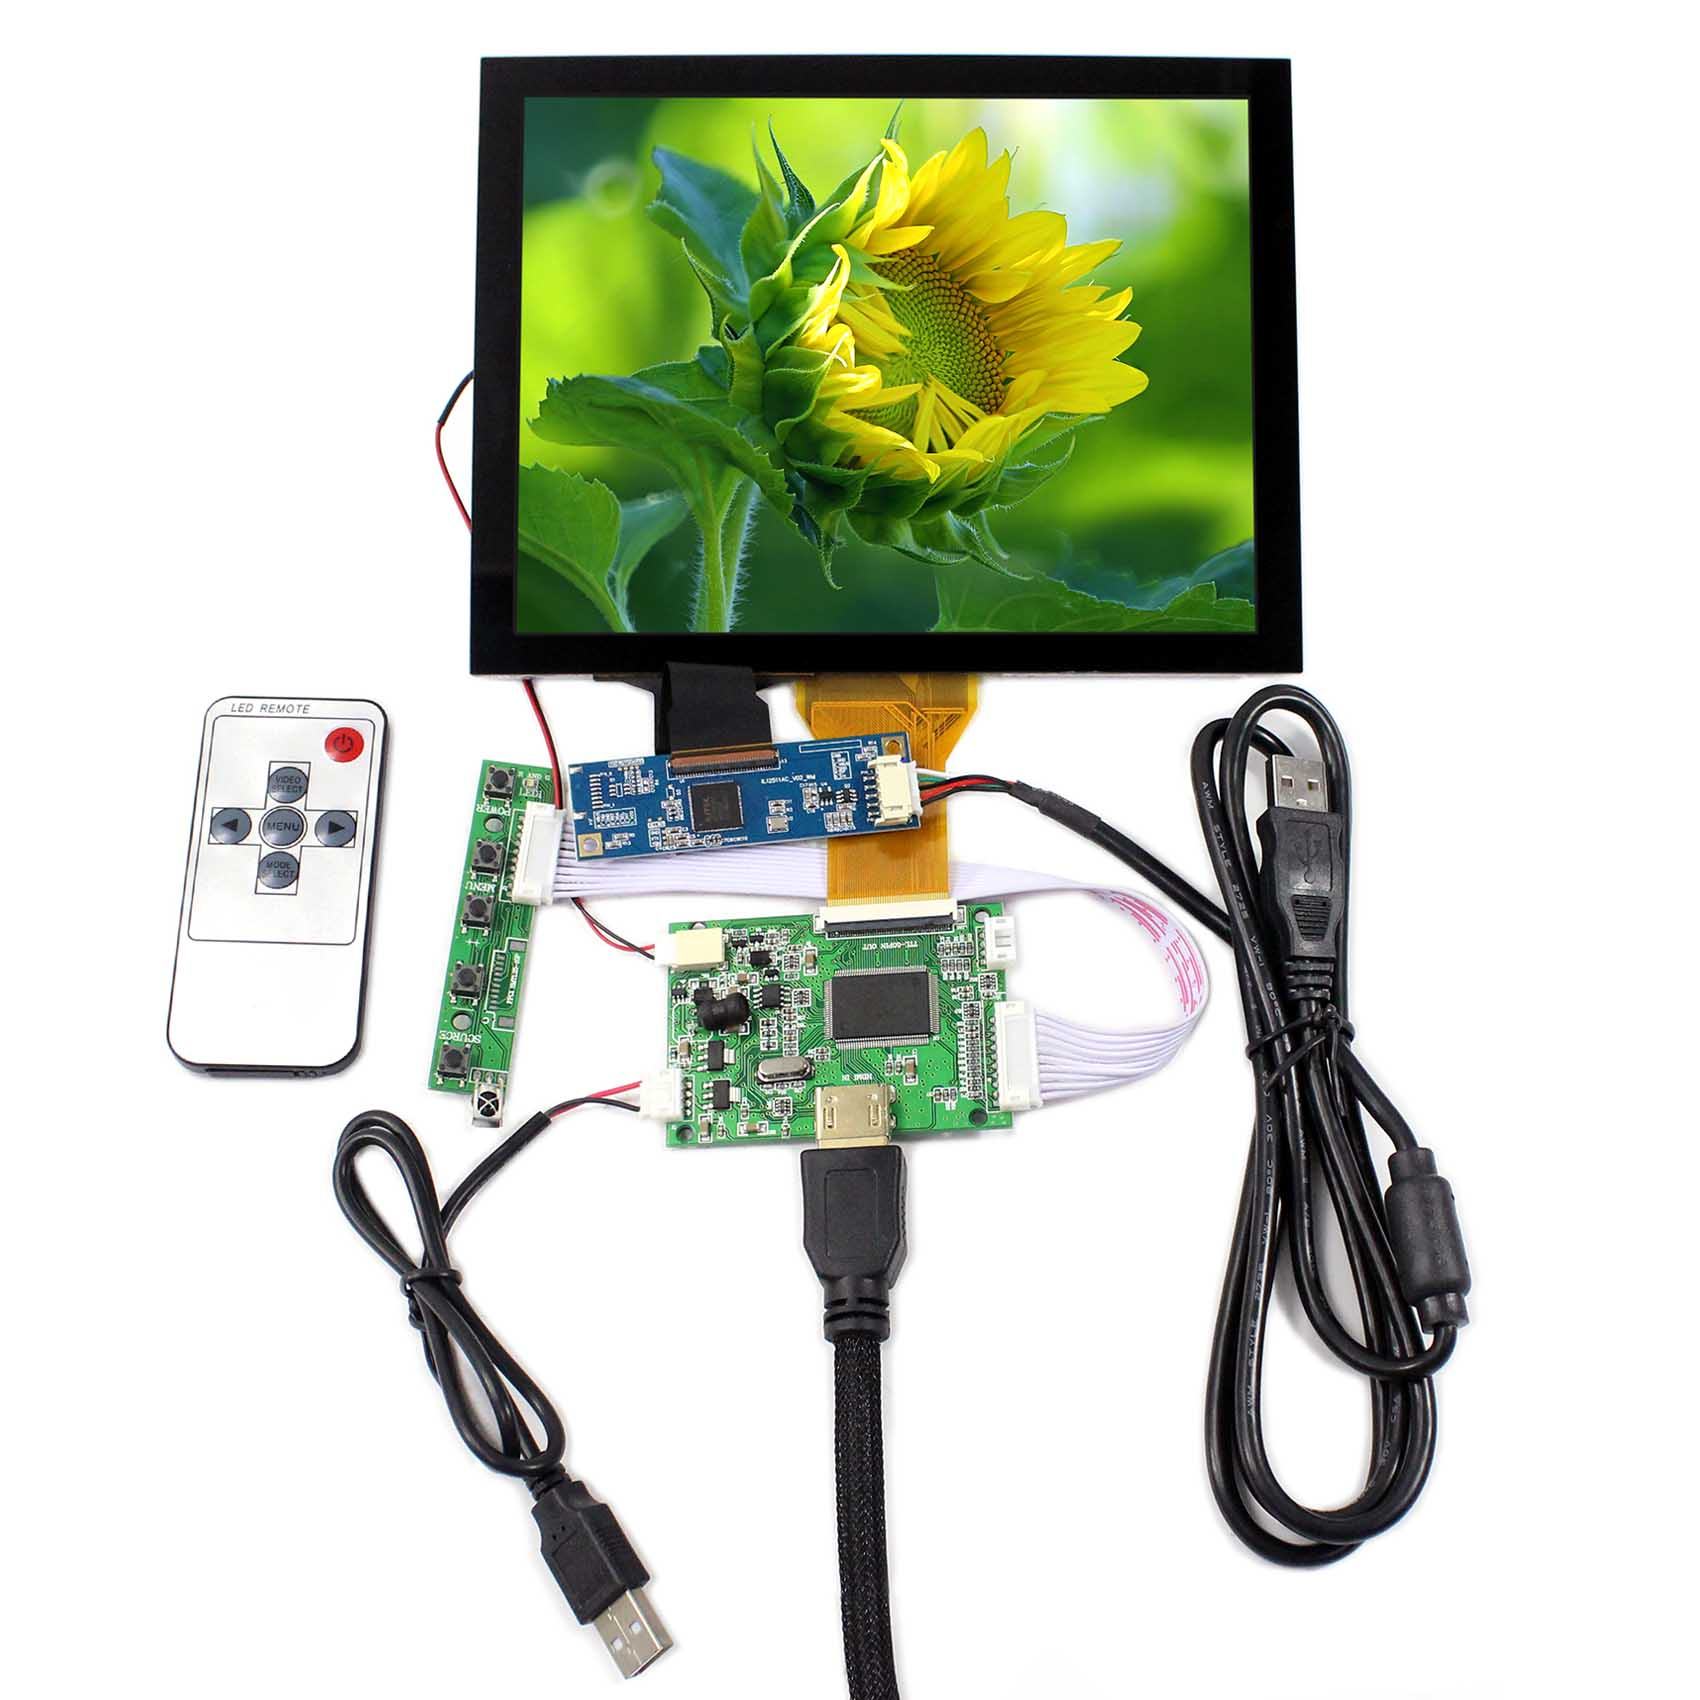 8inch LCD Screen 800x600 Resolution VS080TC-A1 Capacitive Touch Panel VS-TY50-V2 HDMI LCD Controller Board EJ080NA-05A hdmi vga av audio usb lcd controller board 8inch 800x600 ej080na 05a lcd screen